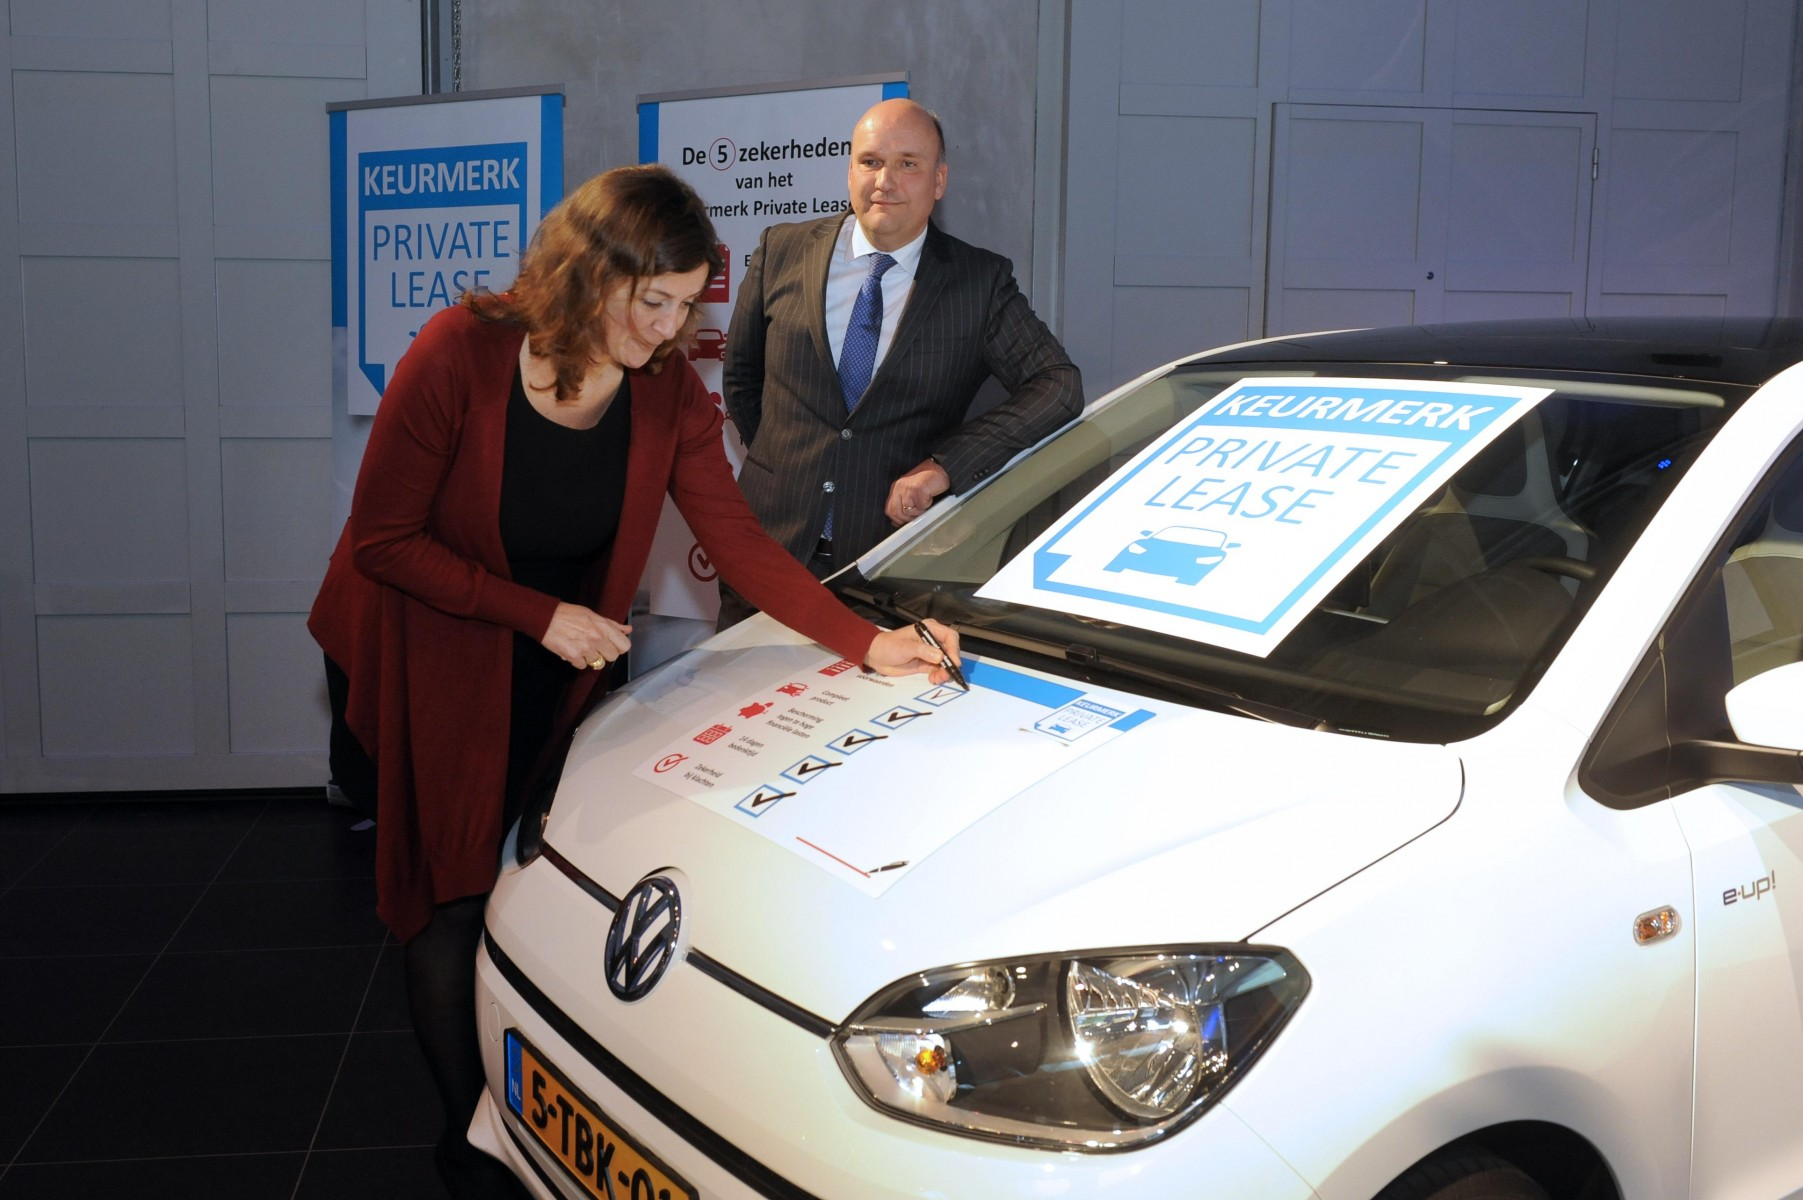 Keurmerk Private Lease Voor Volkswagen Leasing